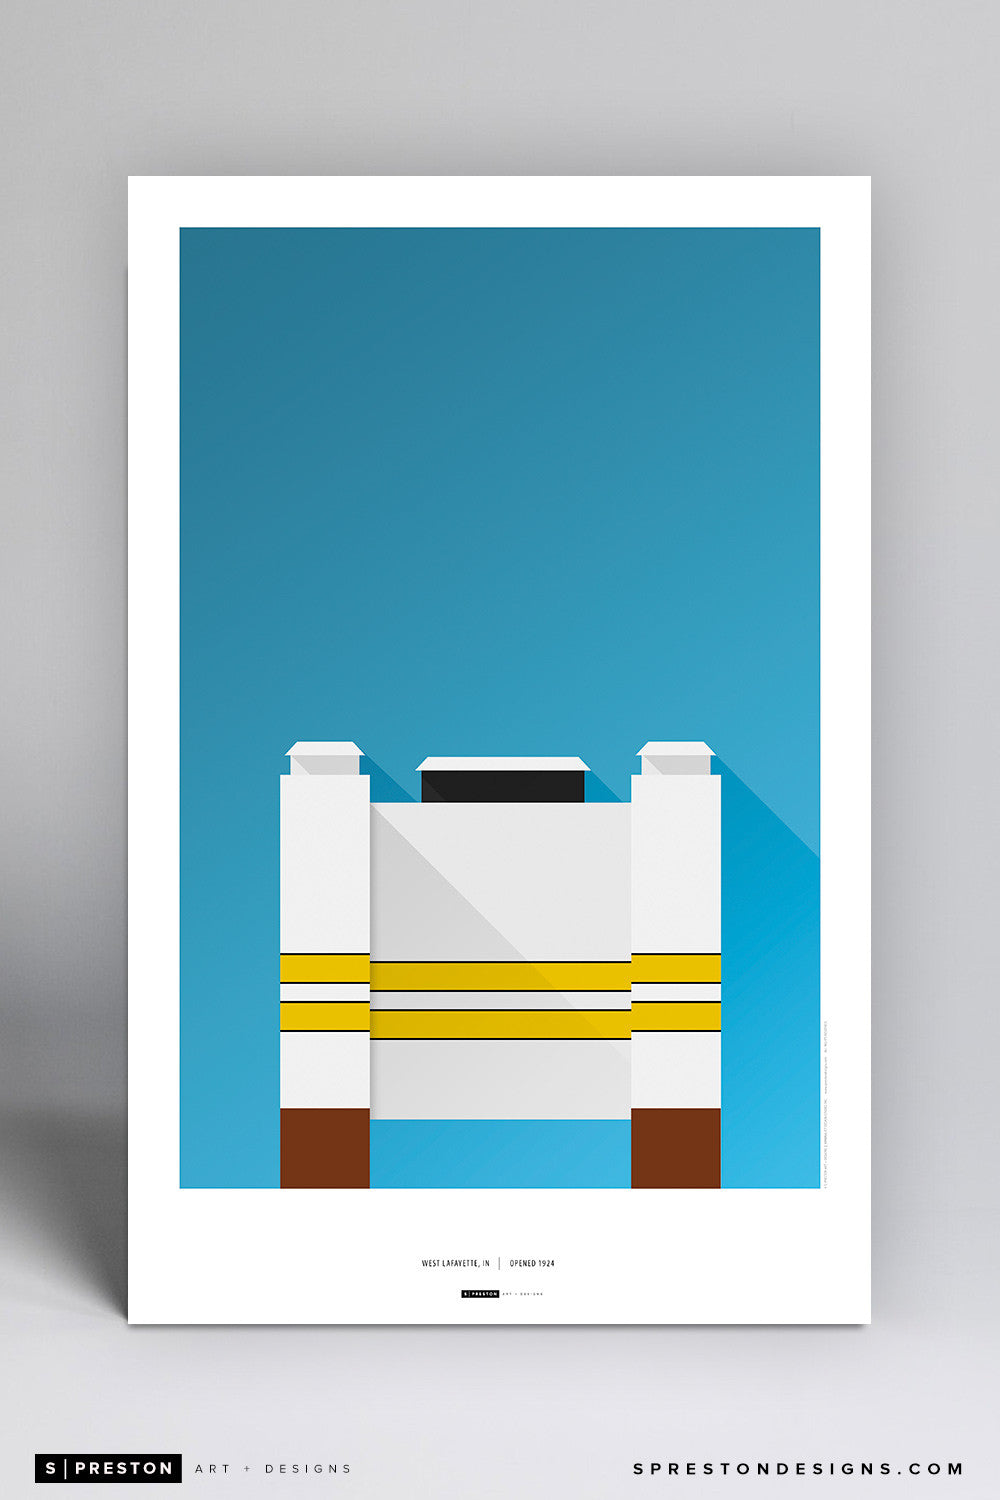 Minimalist Ross-Ade Stadium Poster Print - Purdue University - S. Preston Art + Designs